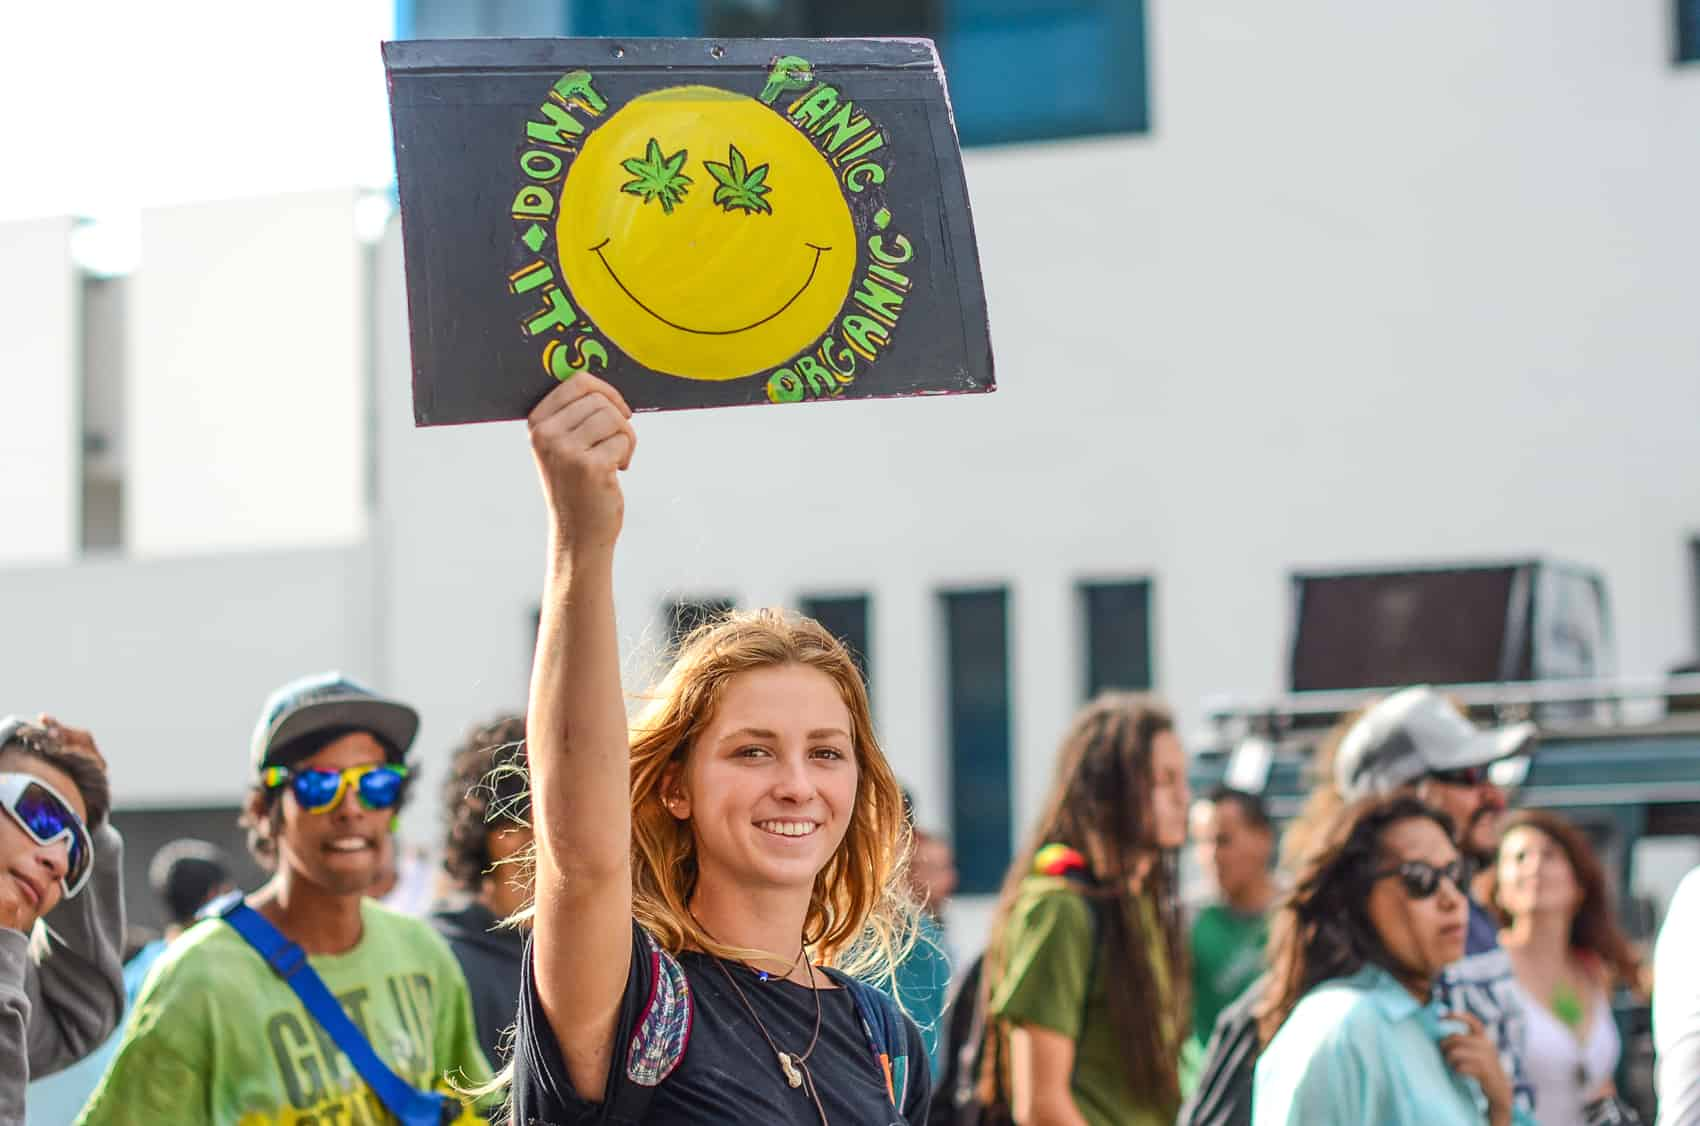 Photo Essay Marijuana Legalization March In Costa Rica  The Tico  Dont Panic Its Organic Reads A Sign By A Marijuana Legalization